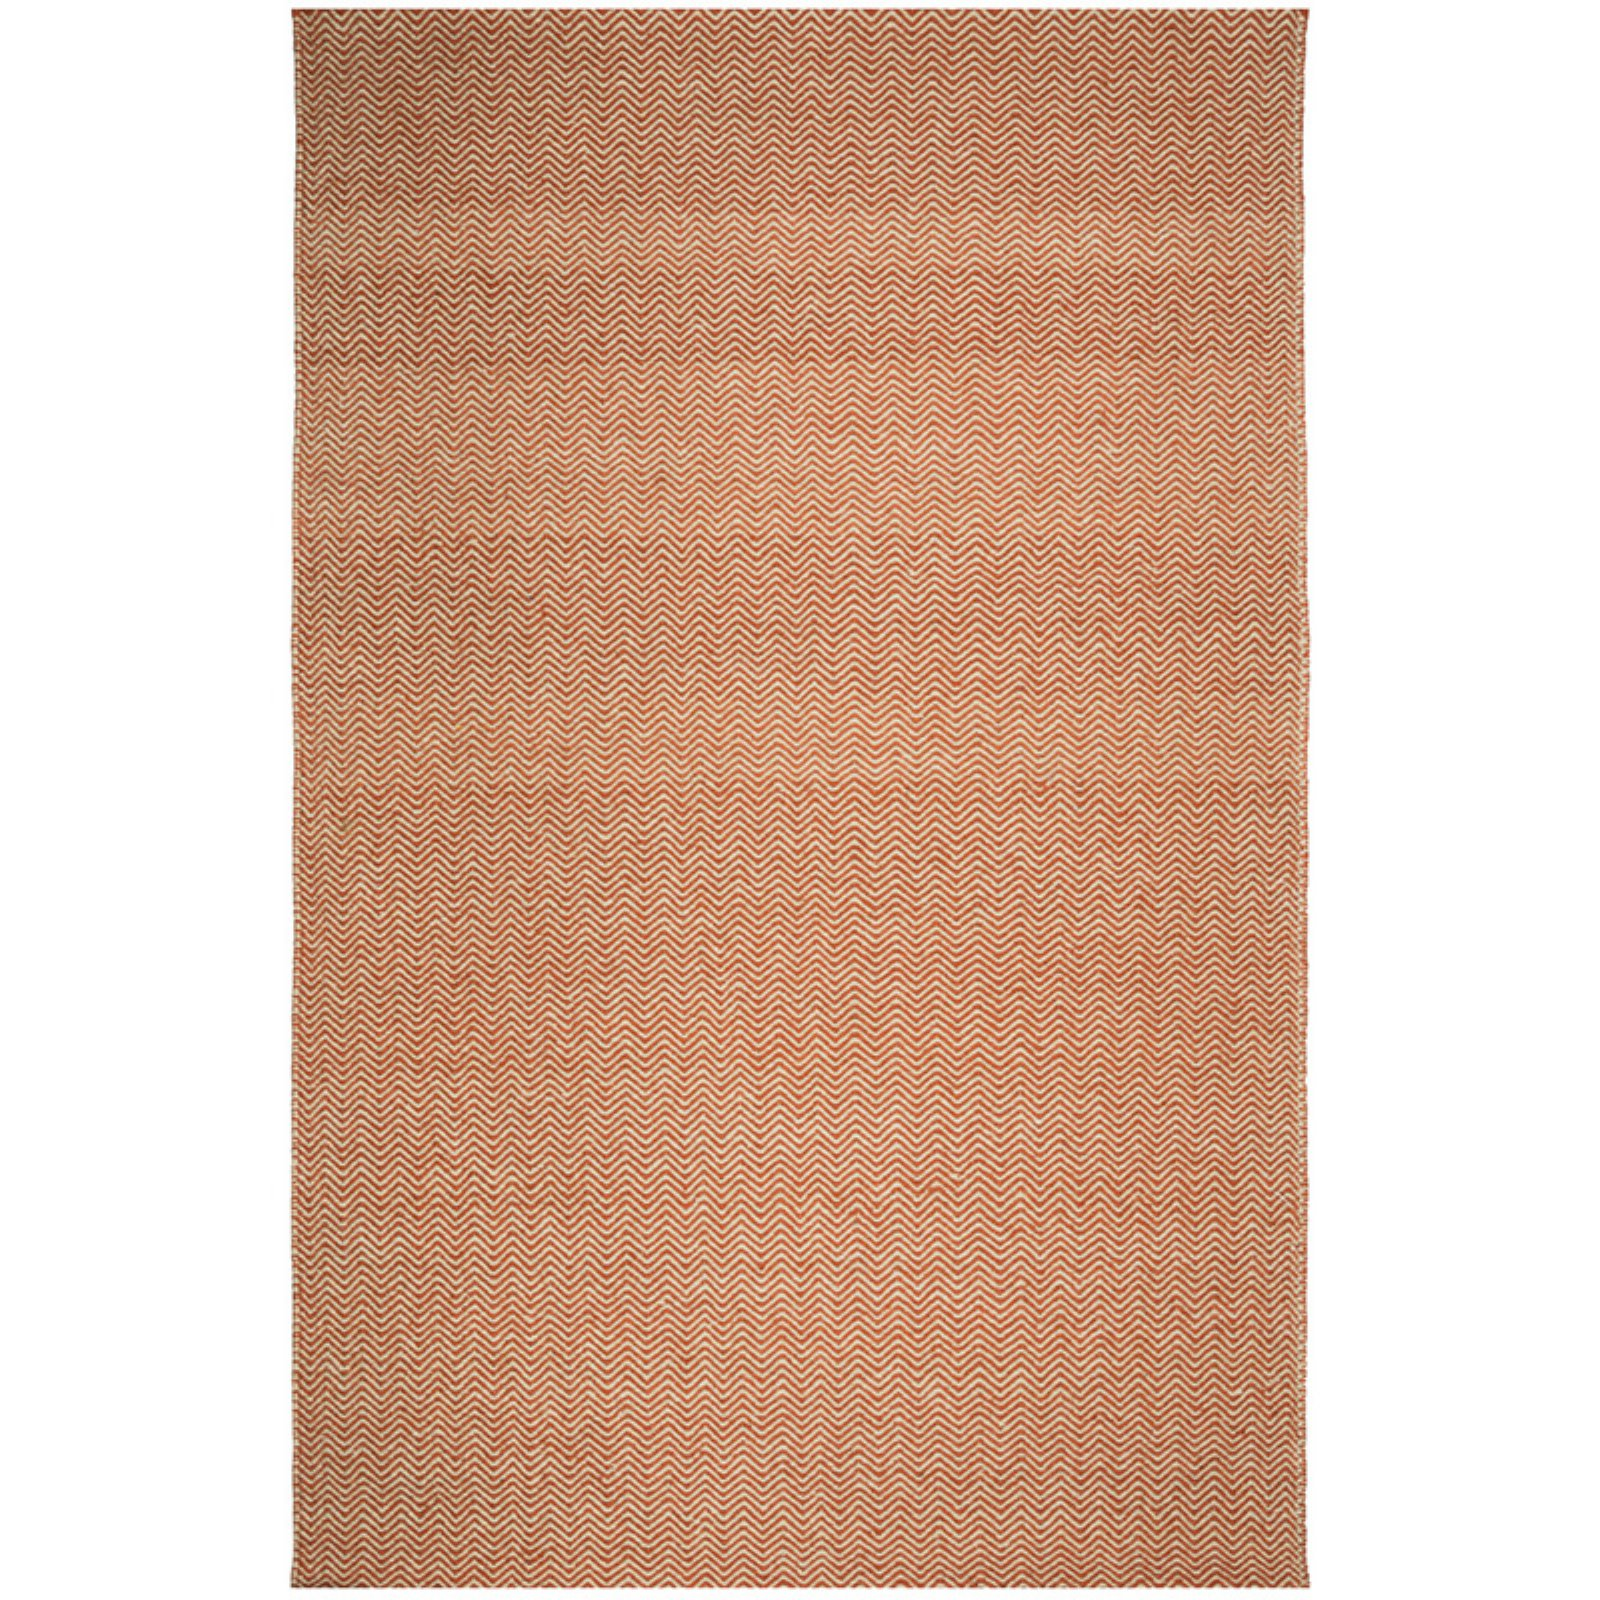 Rizzy Home Twist TW2918 Rug - (3 Foot x 5 Foot)